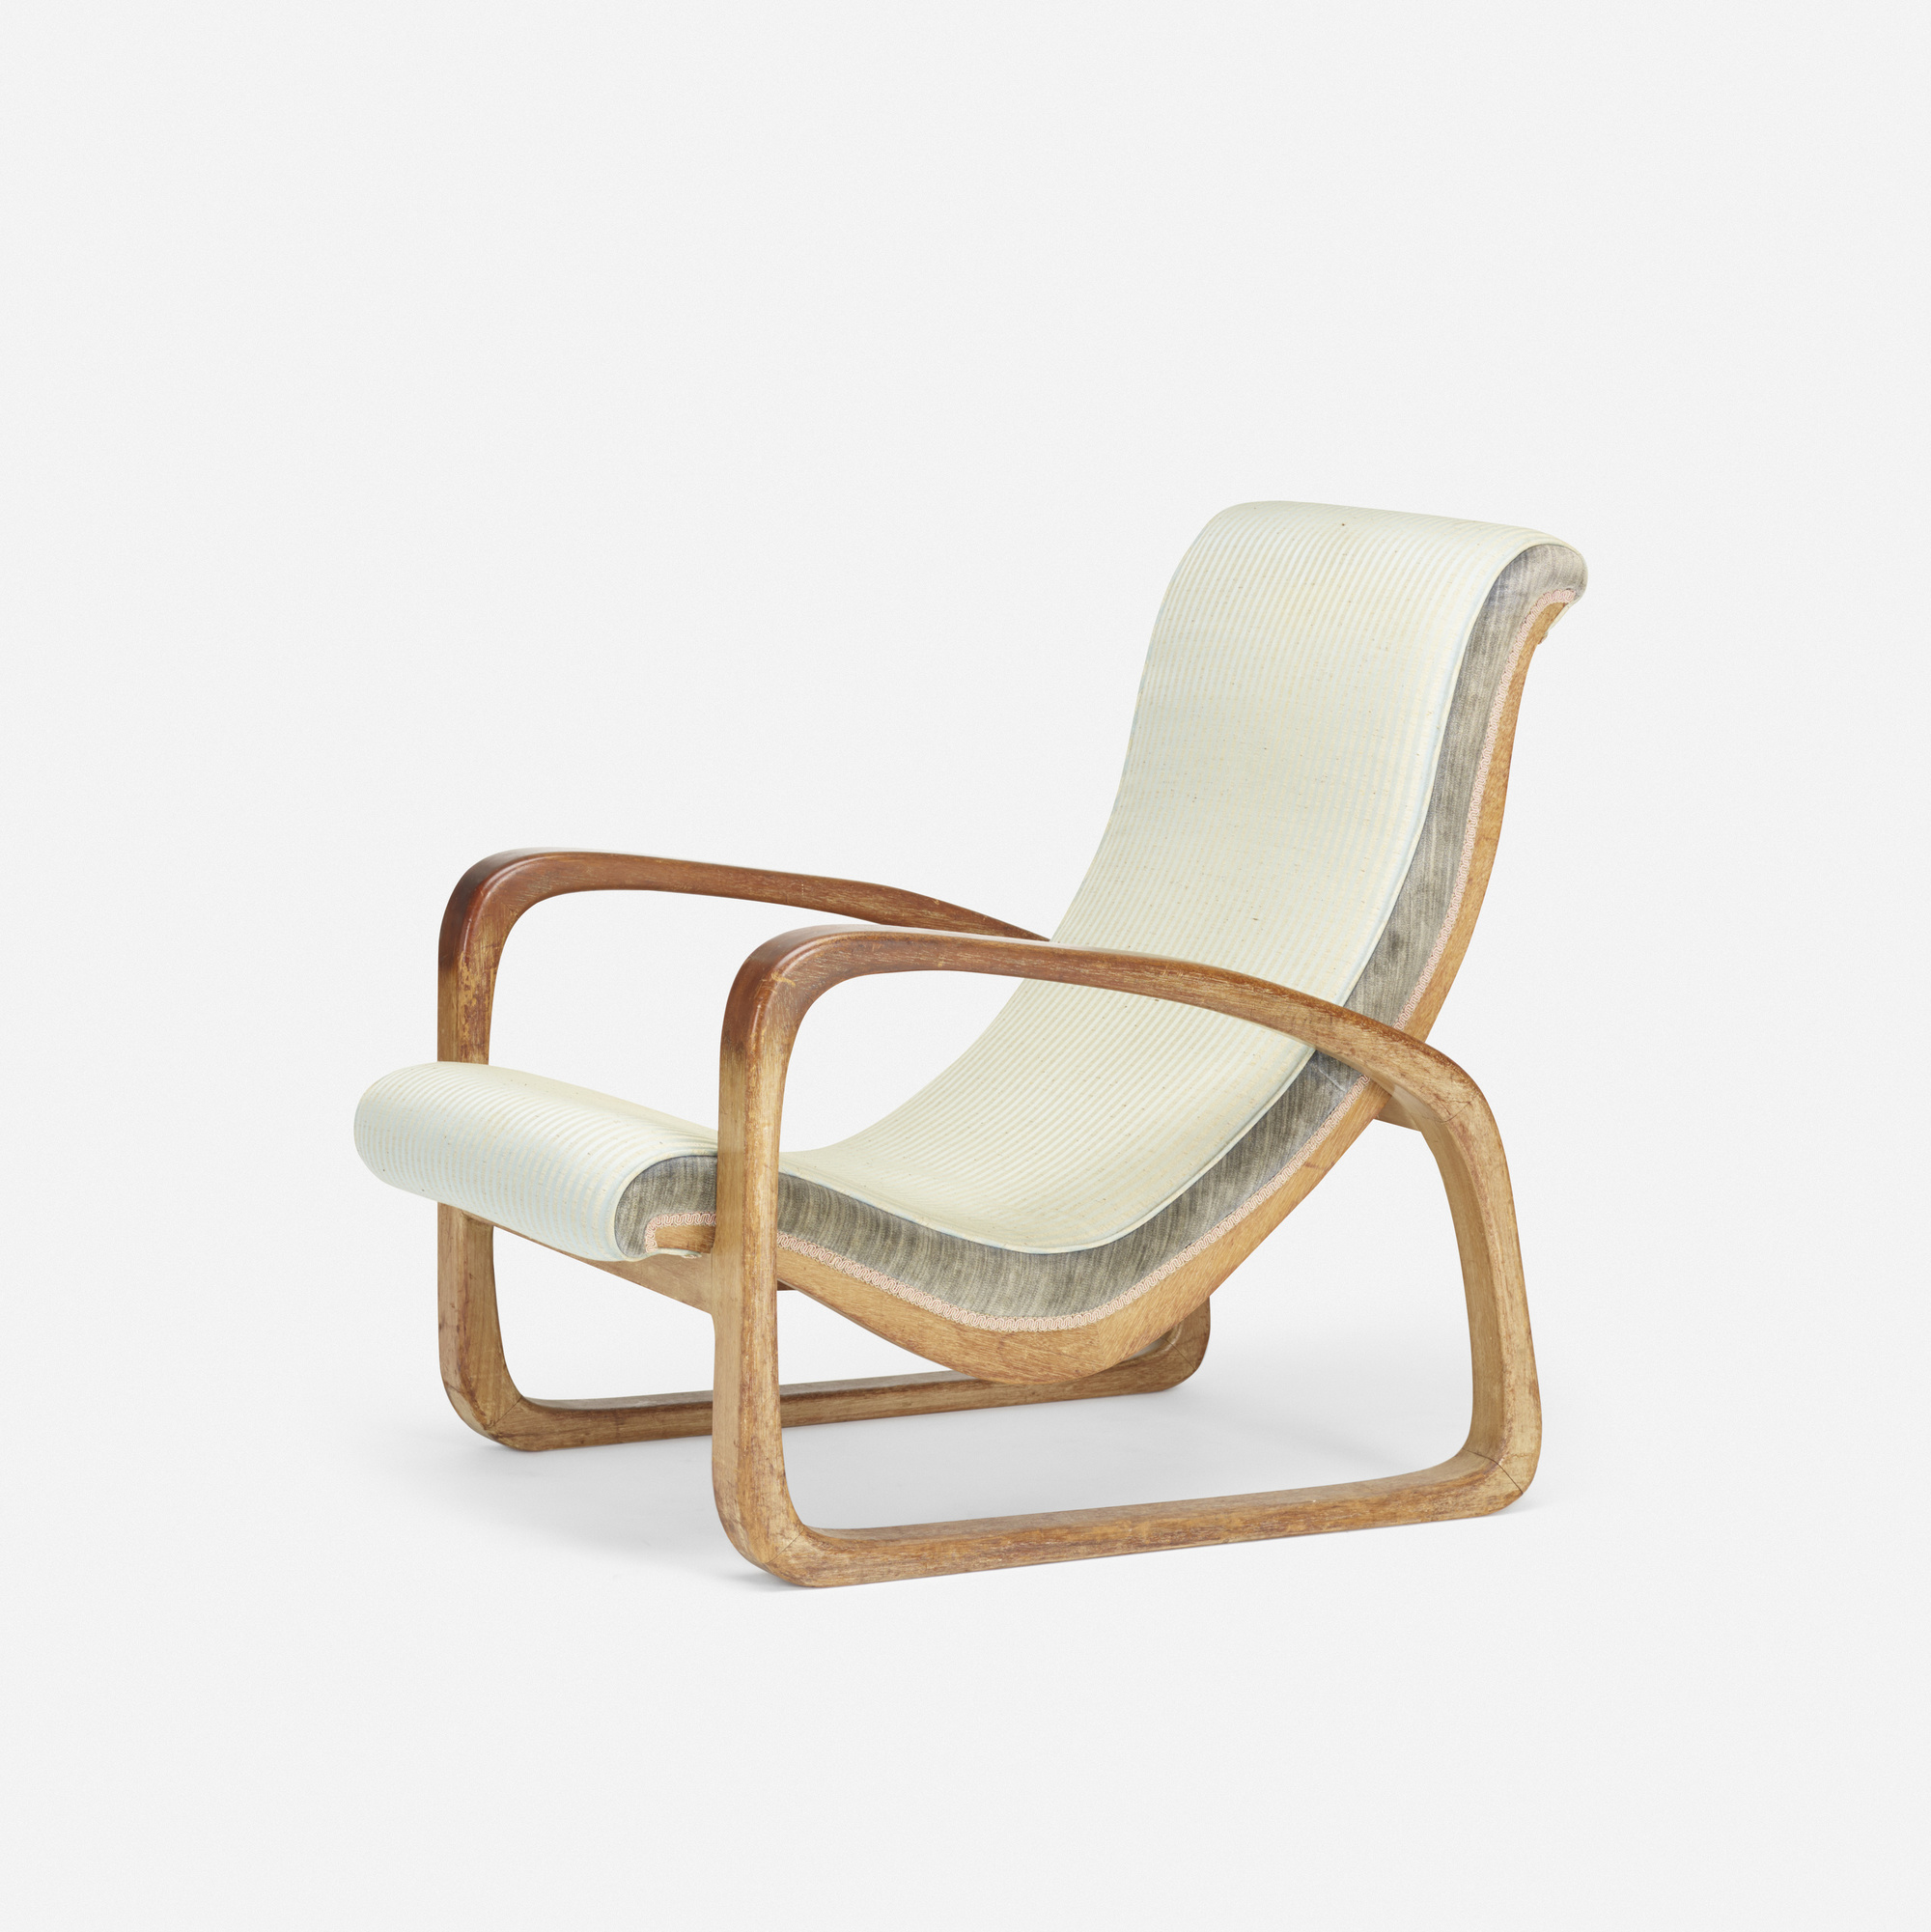 198: Martin Craig And Ann Hatfield / Lounge Chair (1 Of 3)